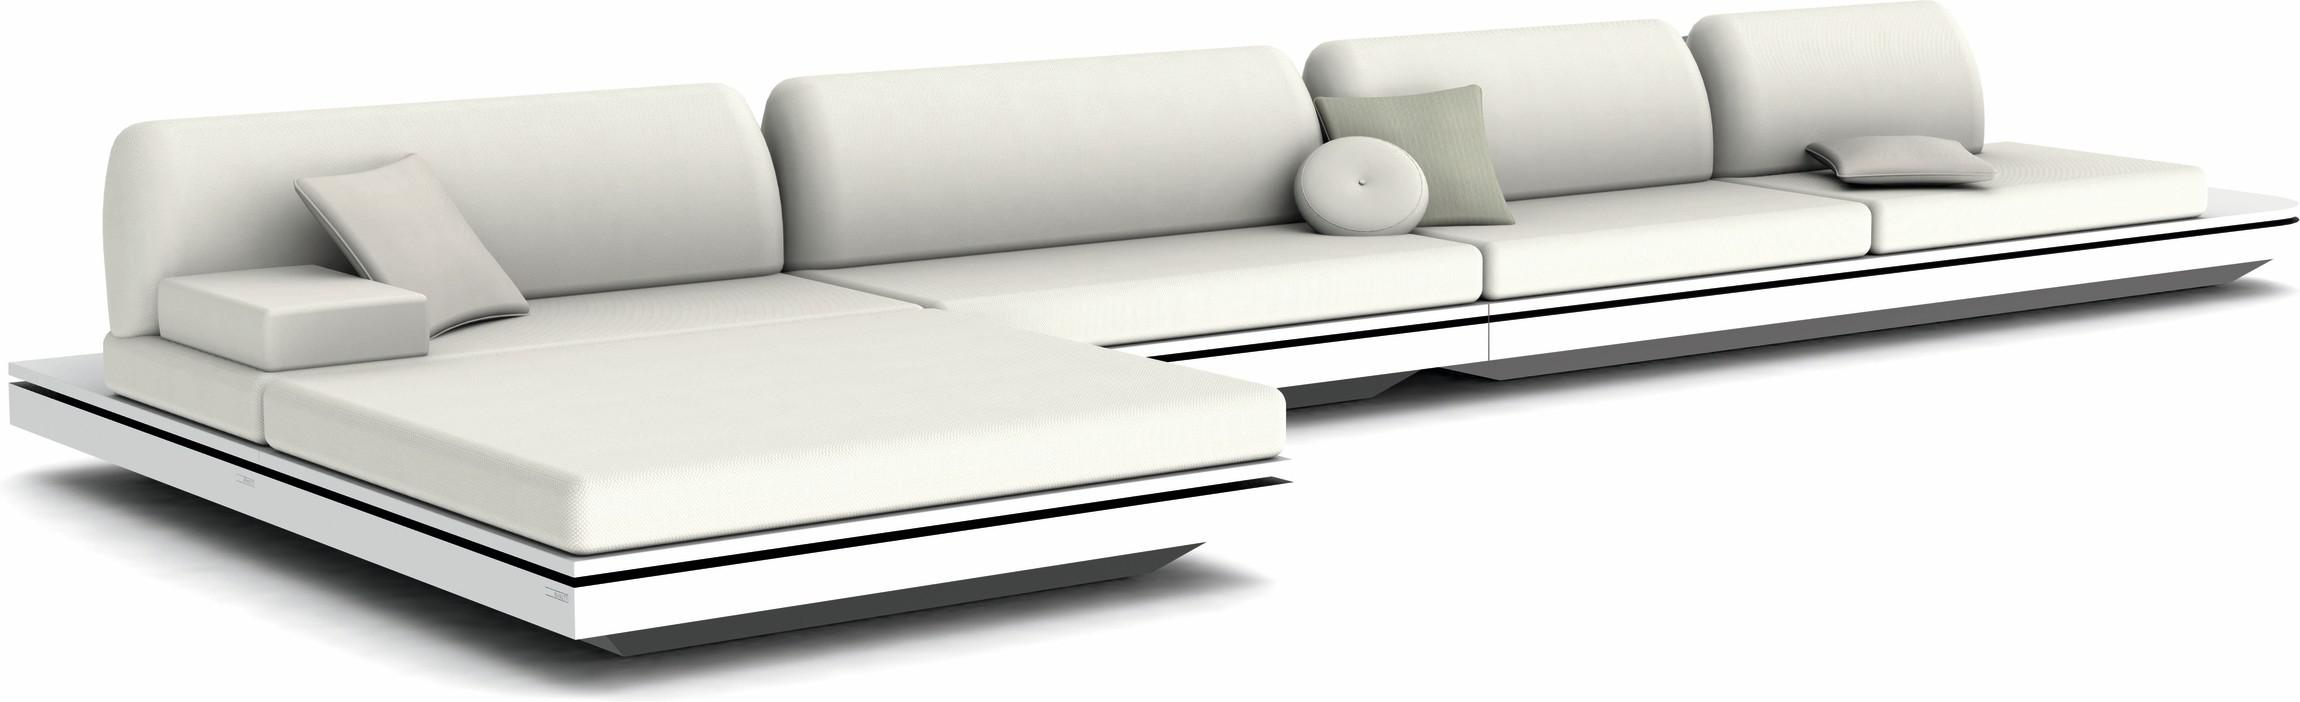 Elements concept 4 - white - casual cushions